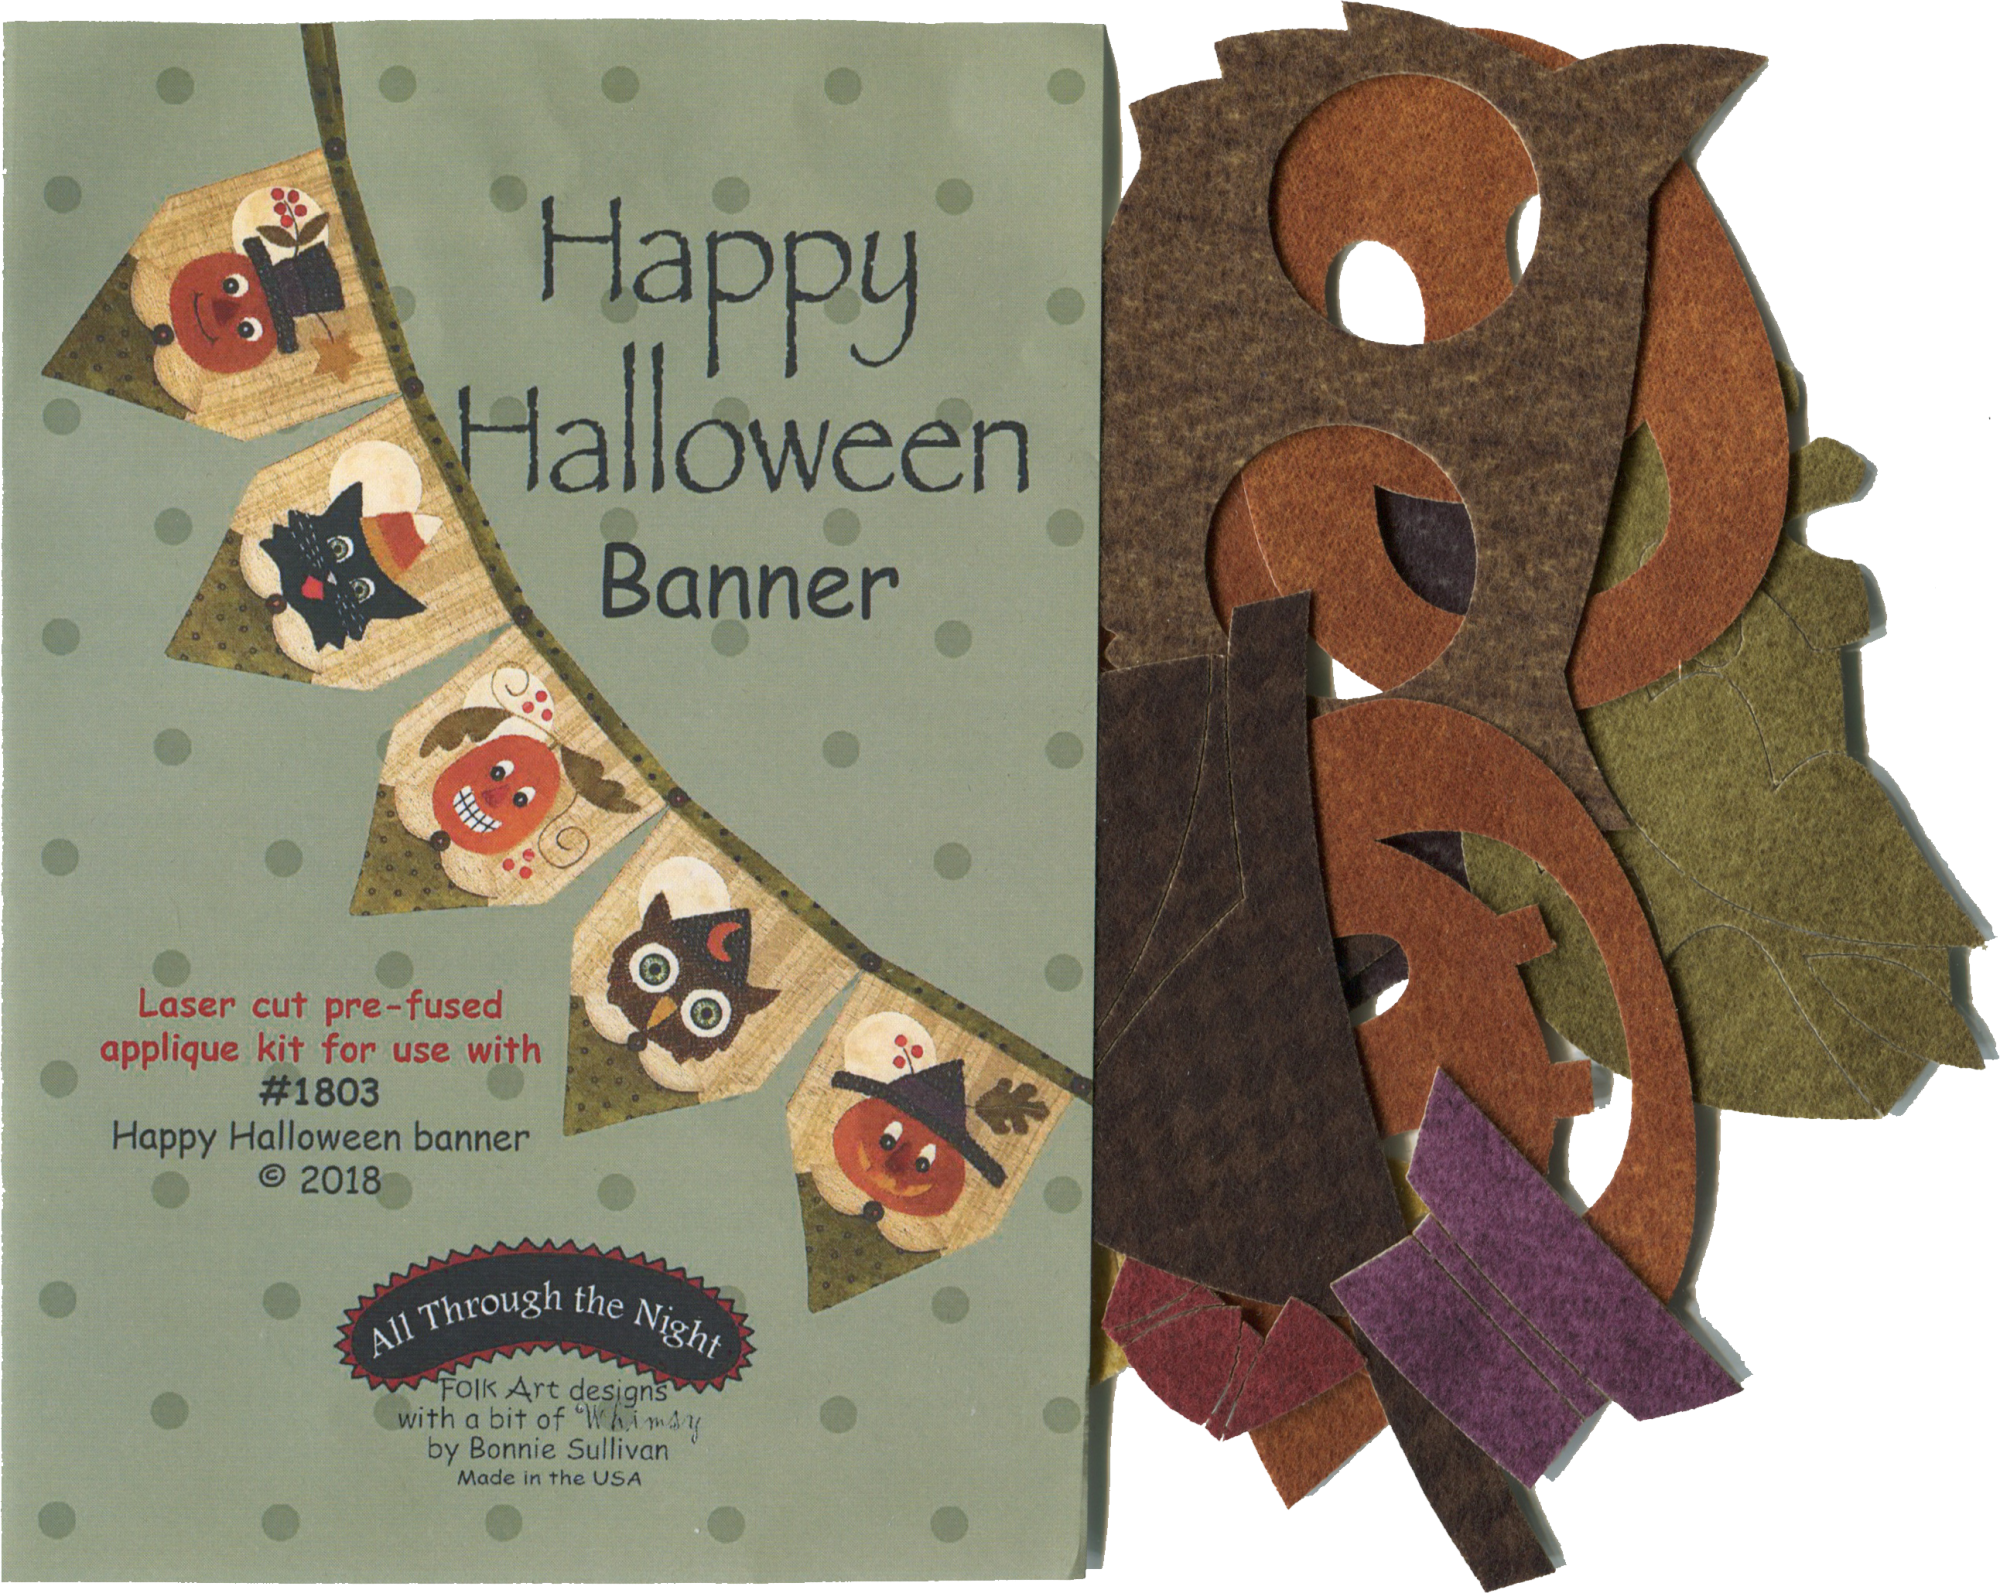 Happy Halloween Banner Applique Kit